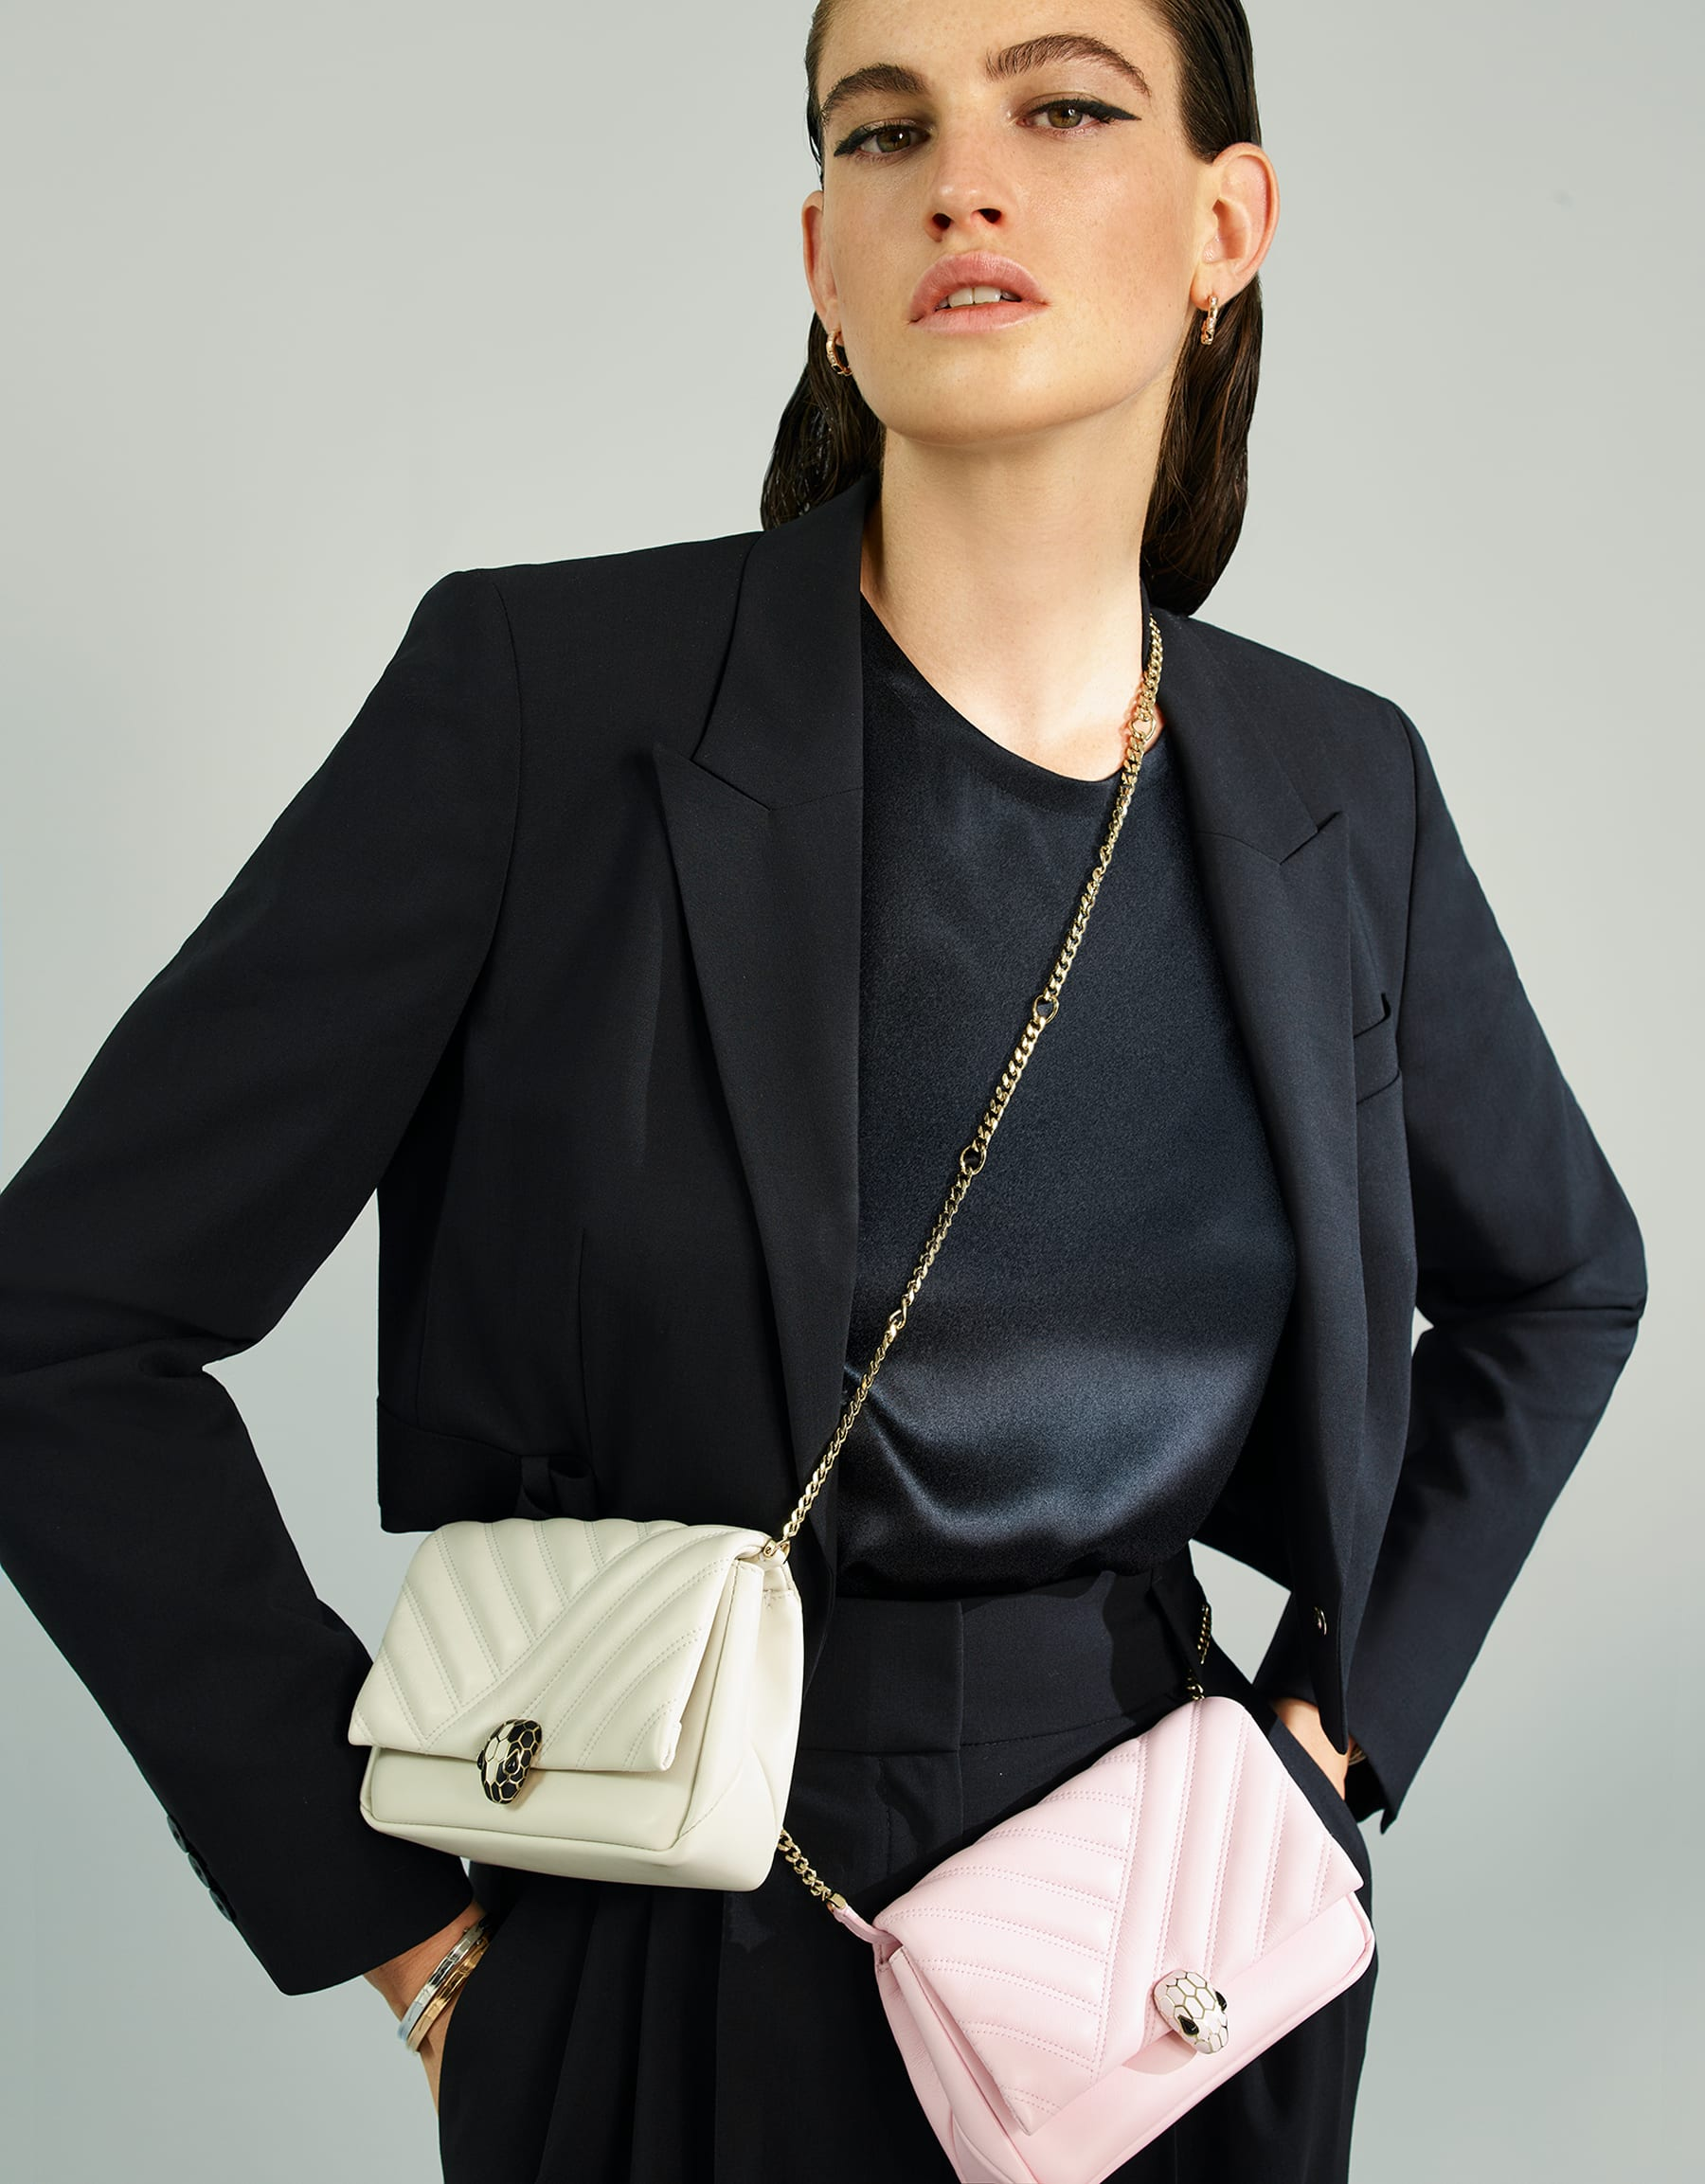 Serpenti Cabochon micro bag in soft matelassé rosa di francia calf leather, with a graphic motif. Brass light gold plated tempting snake head closure in rosa di francia enamel and black onyx eyes. 288758 image 5